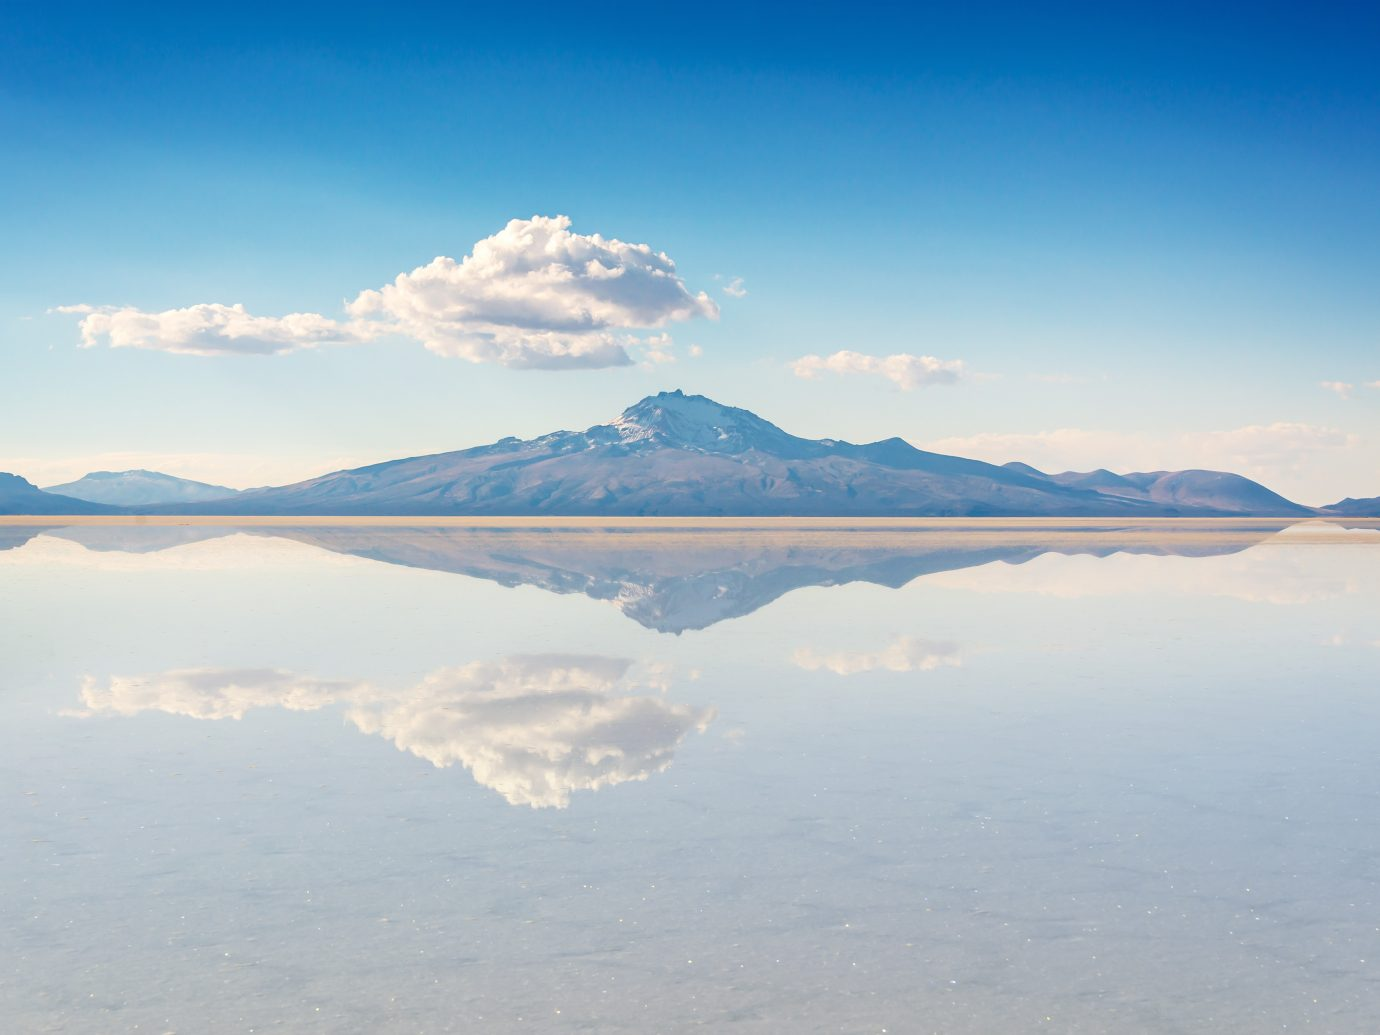 reflection of mountain in Salar de Uyuni (Uyuni salt flats), Potosi, Bolivia, South America